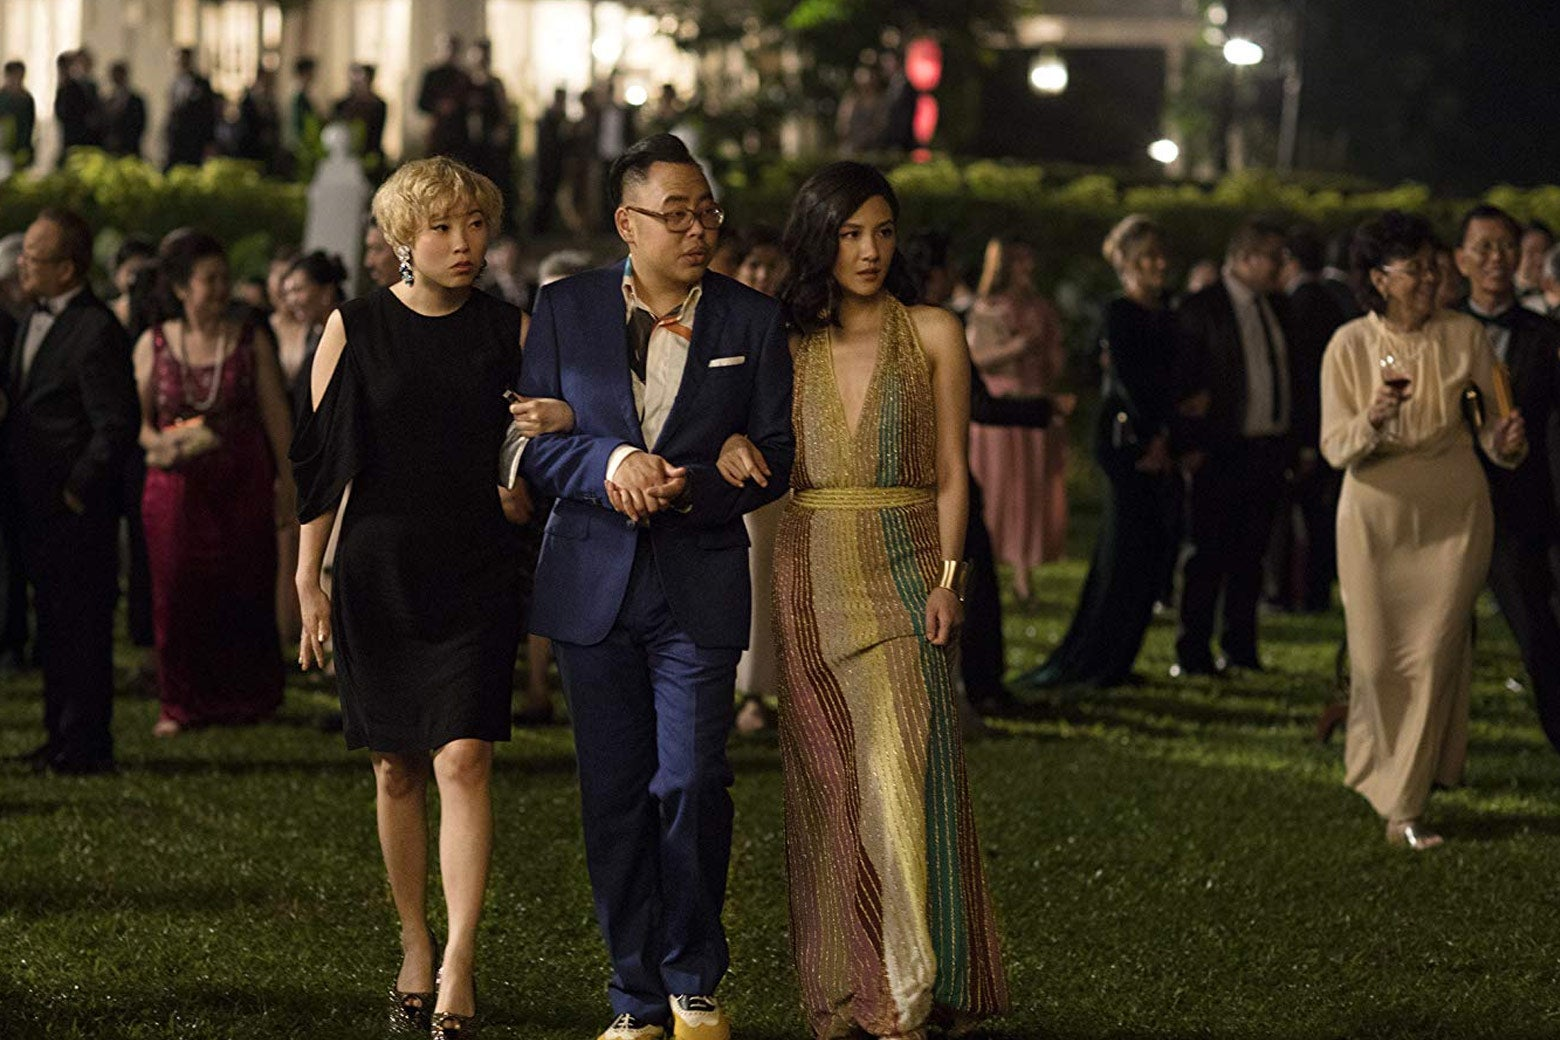 Awkwafina, Nico Santos, and Constance Wu wander the yard of a party in this still from Crazy Rich Asians